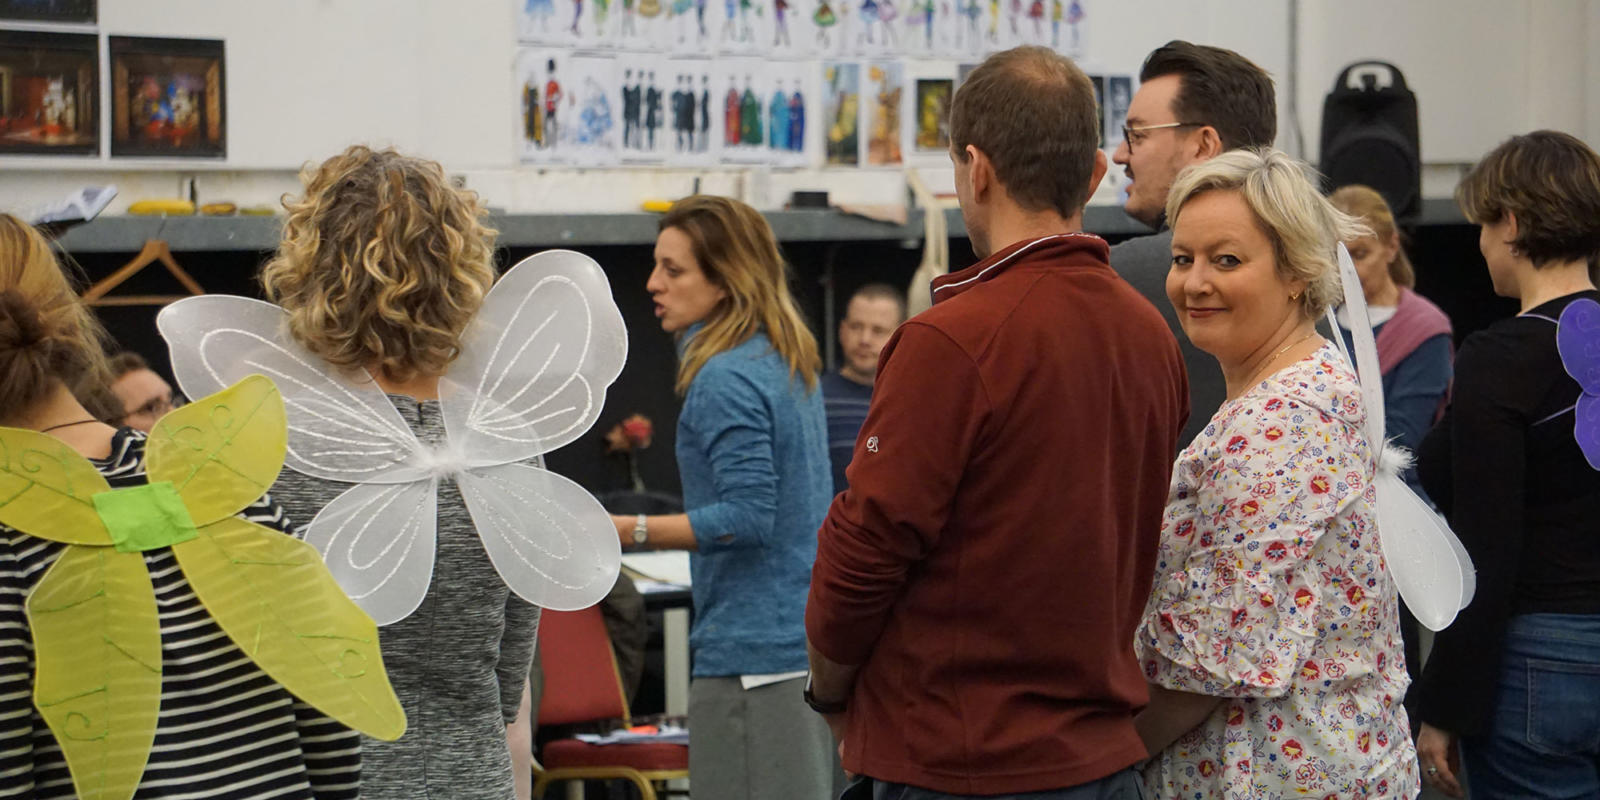 ENO Iolanthe: members of the ENO chorus taking instruction from choreographer Lizzi Gee